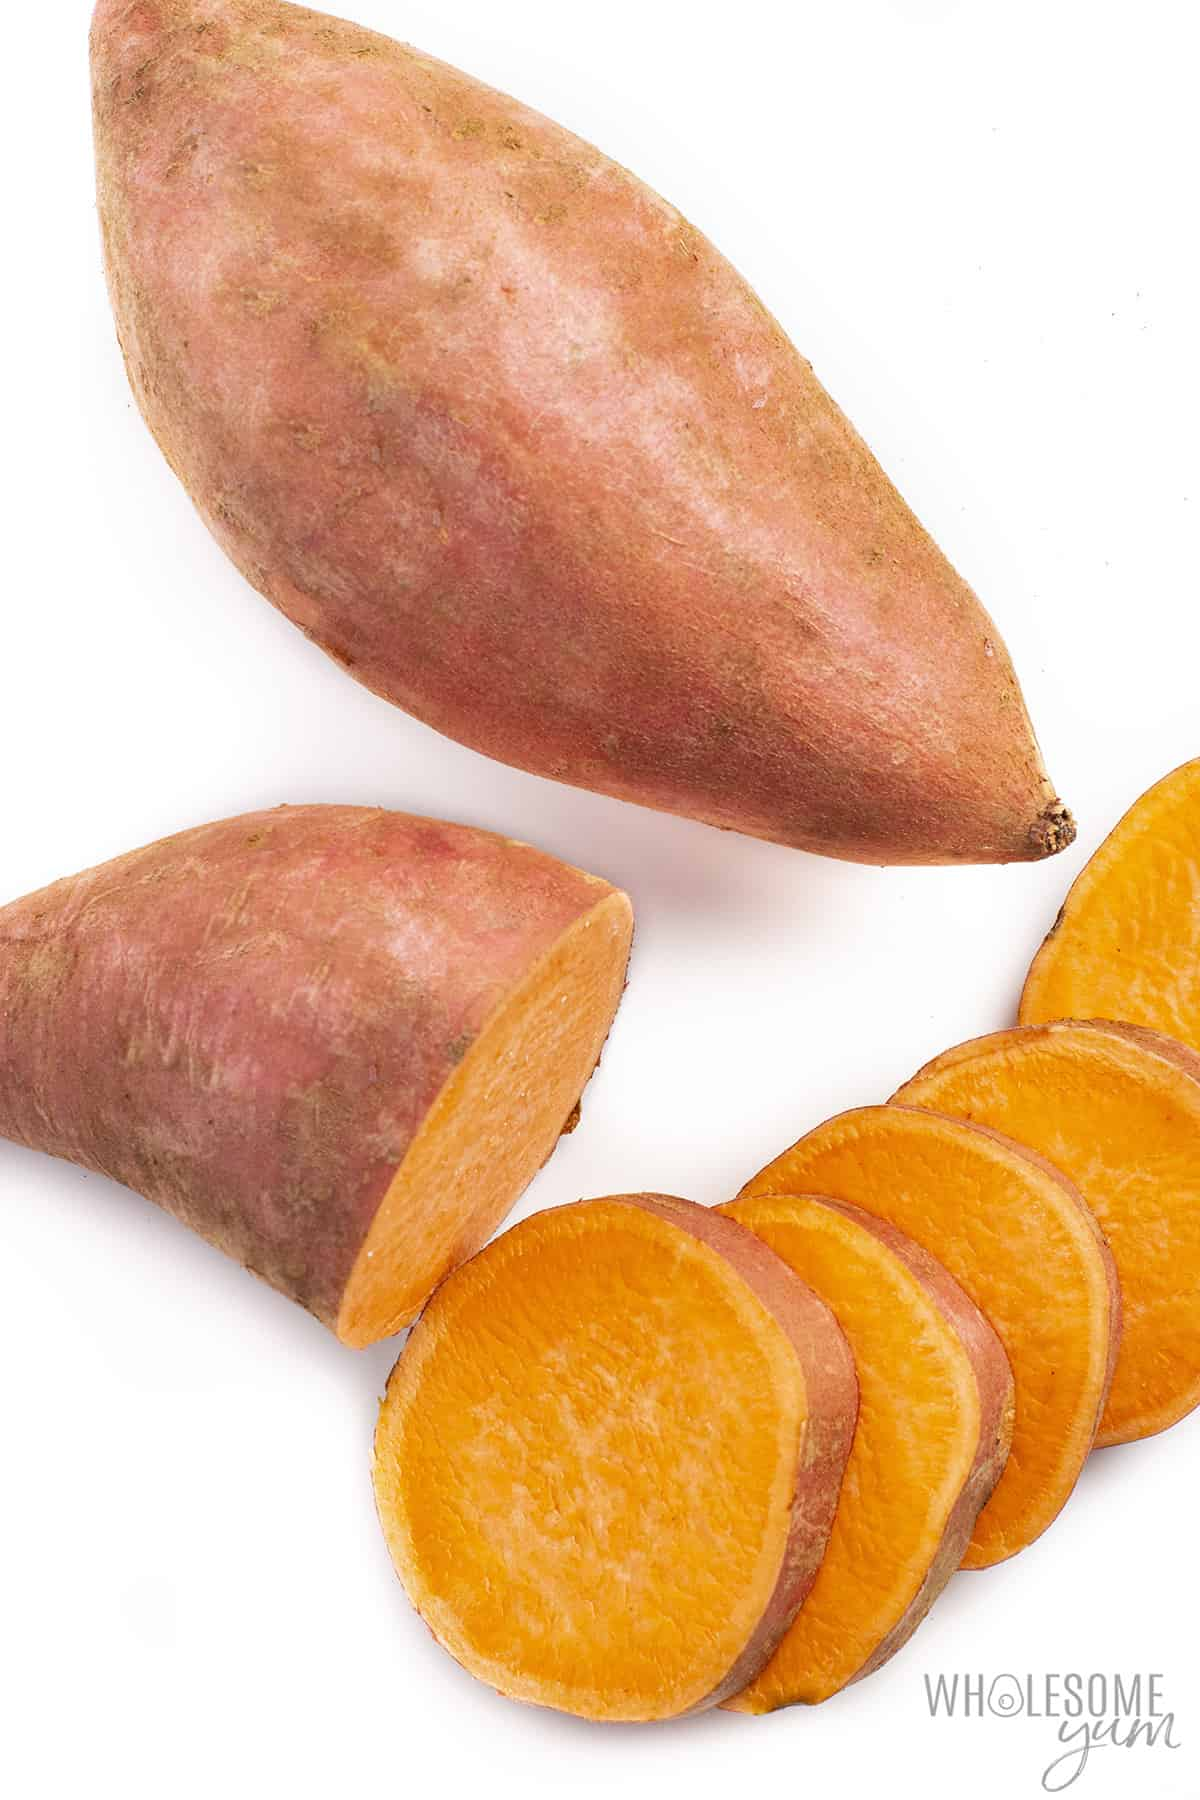 Are sweet potatoes keto? These sliced sweet potatoes are not very keto friendly.